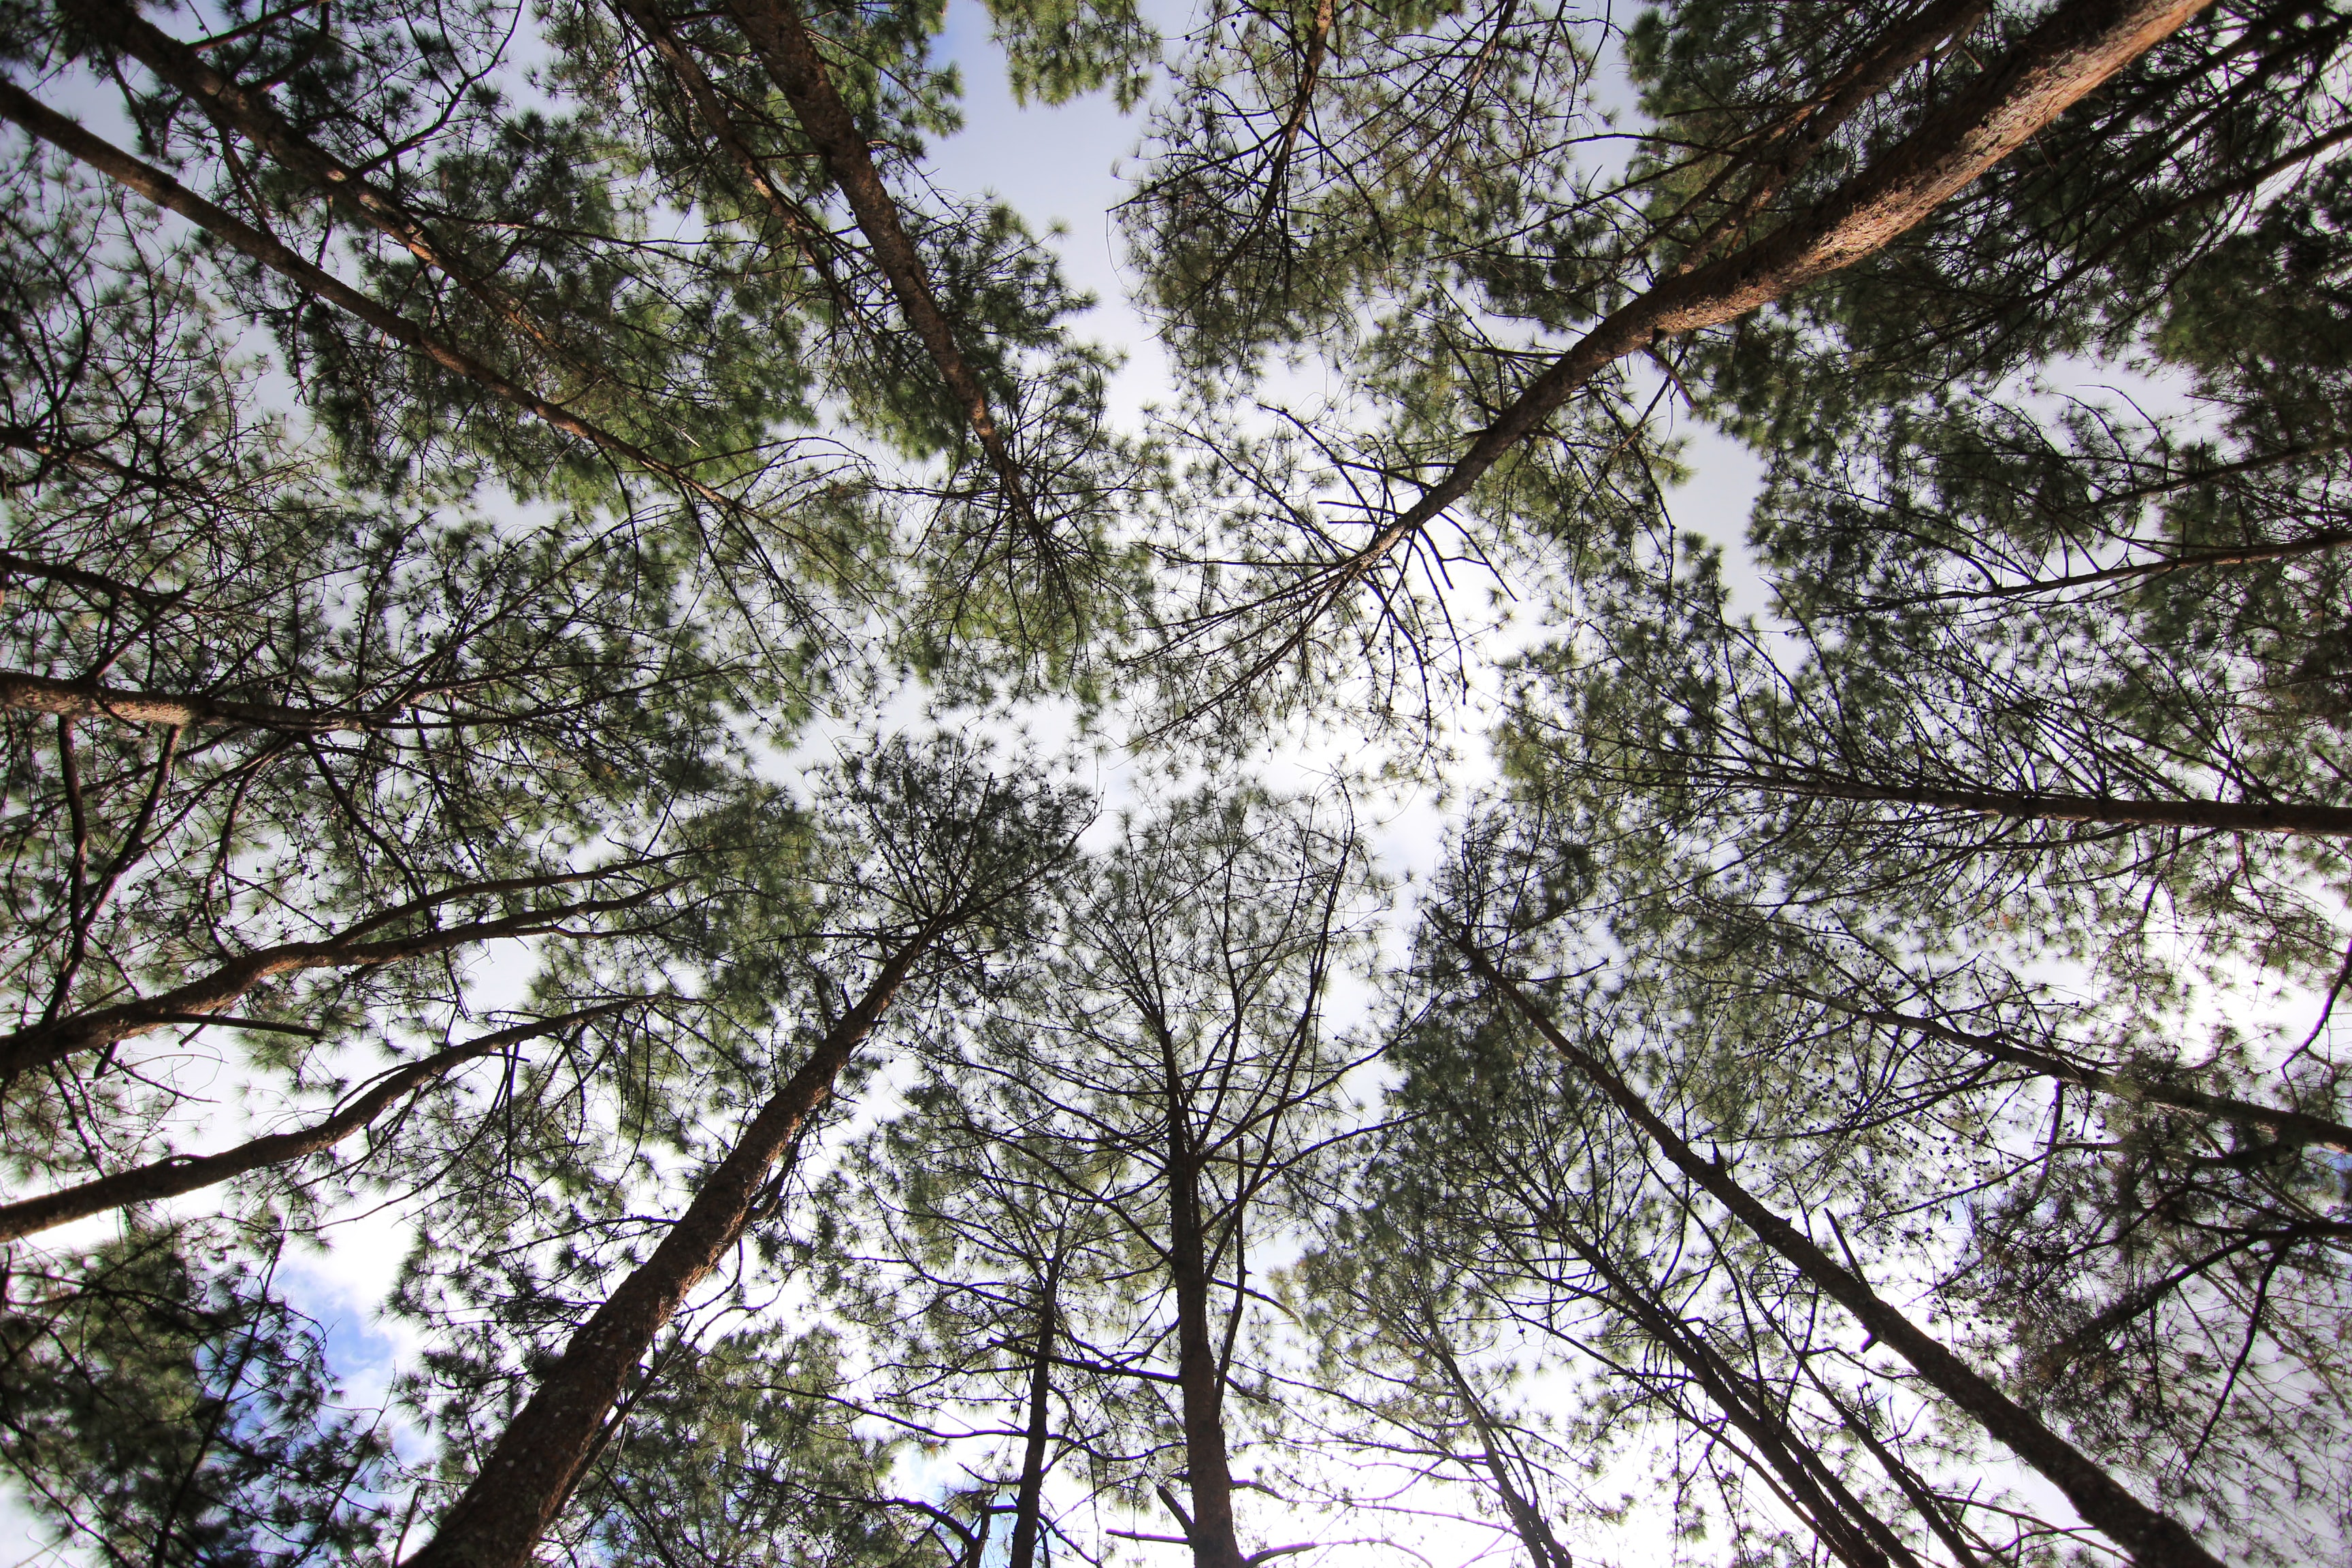 worm's eye view photo of green leafed trees